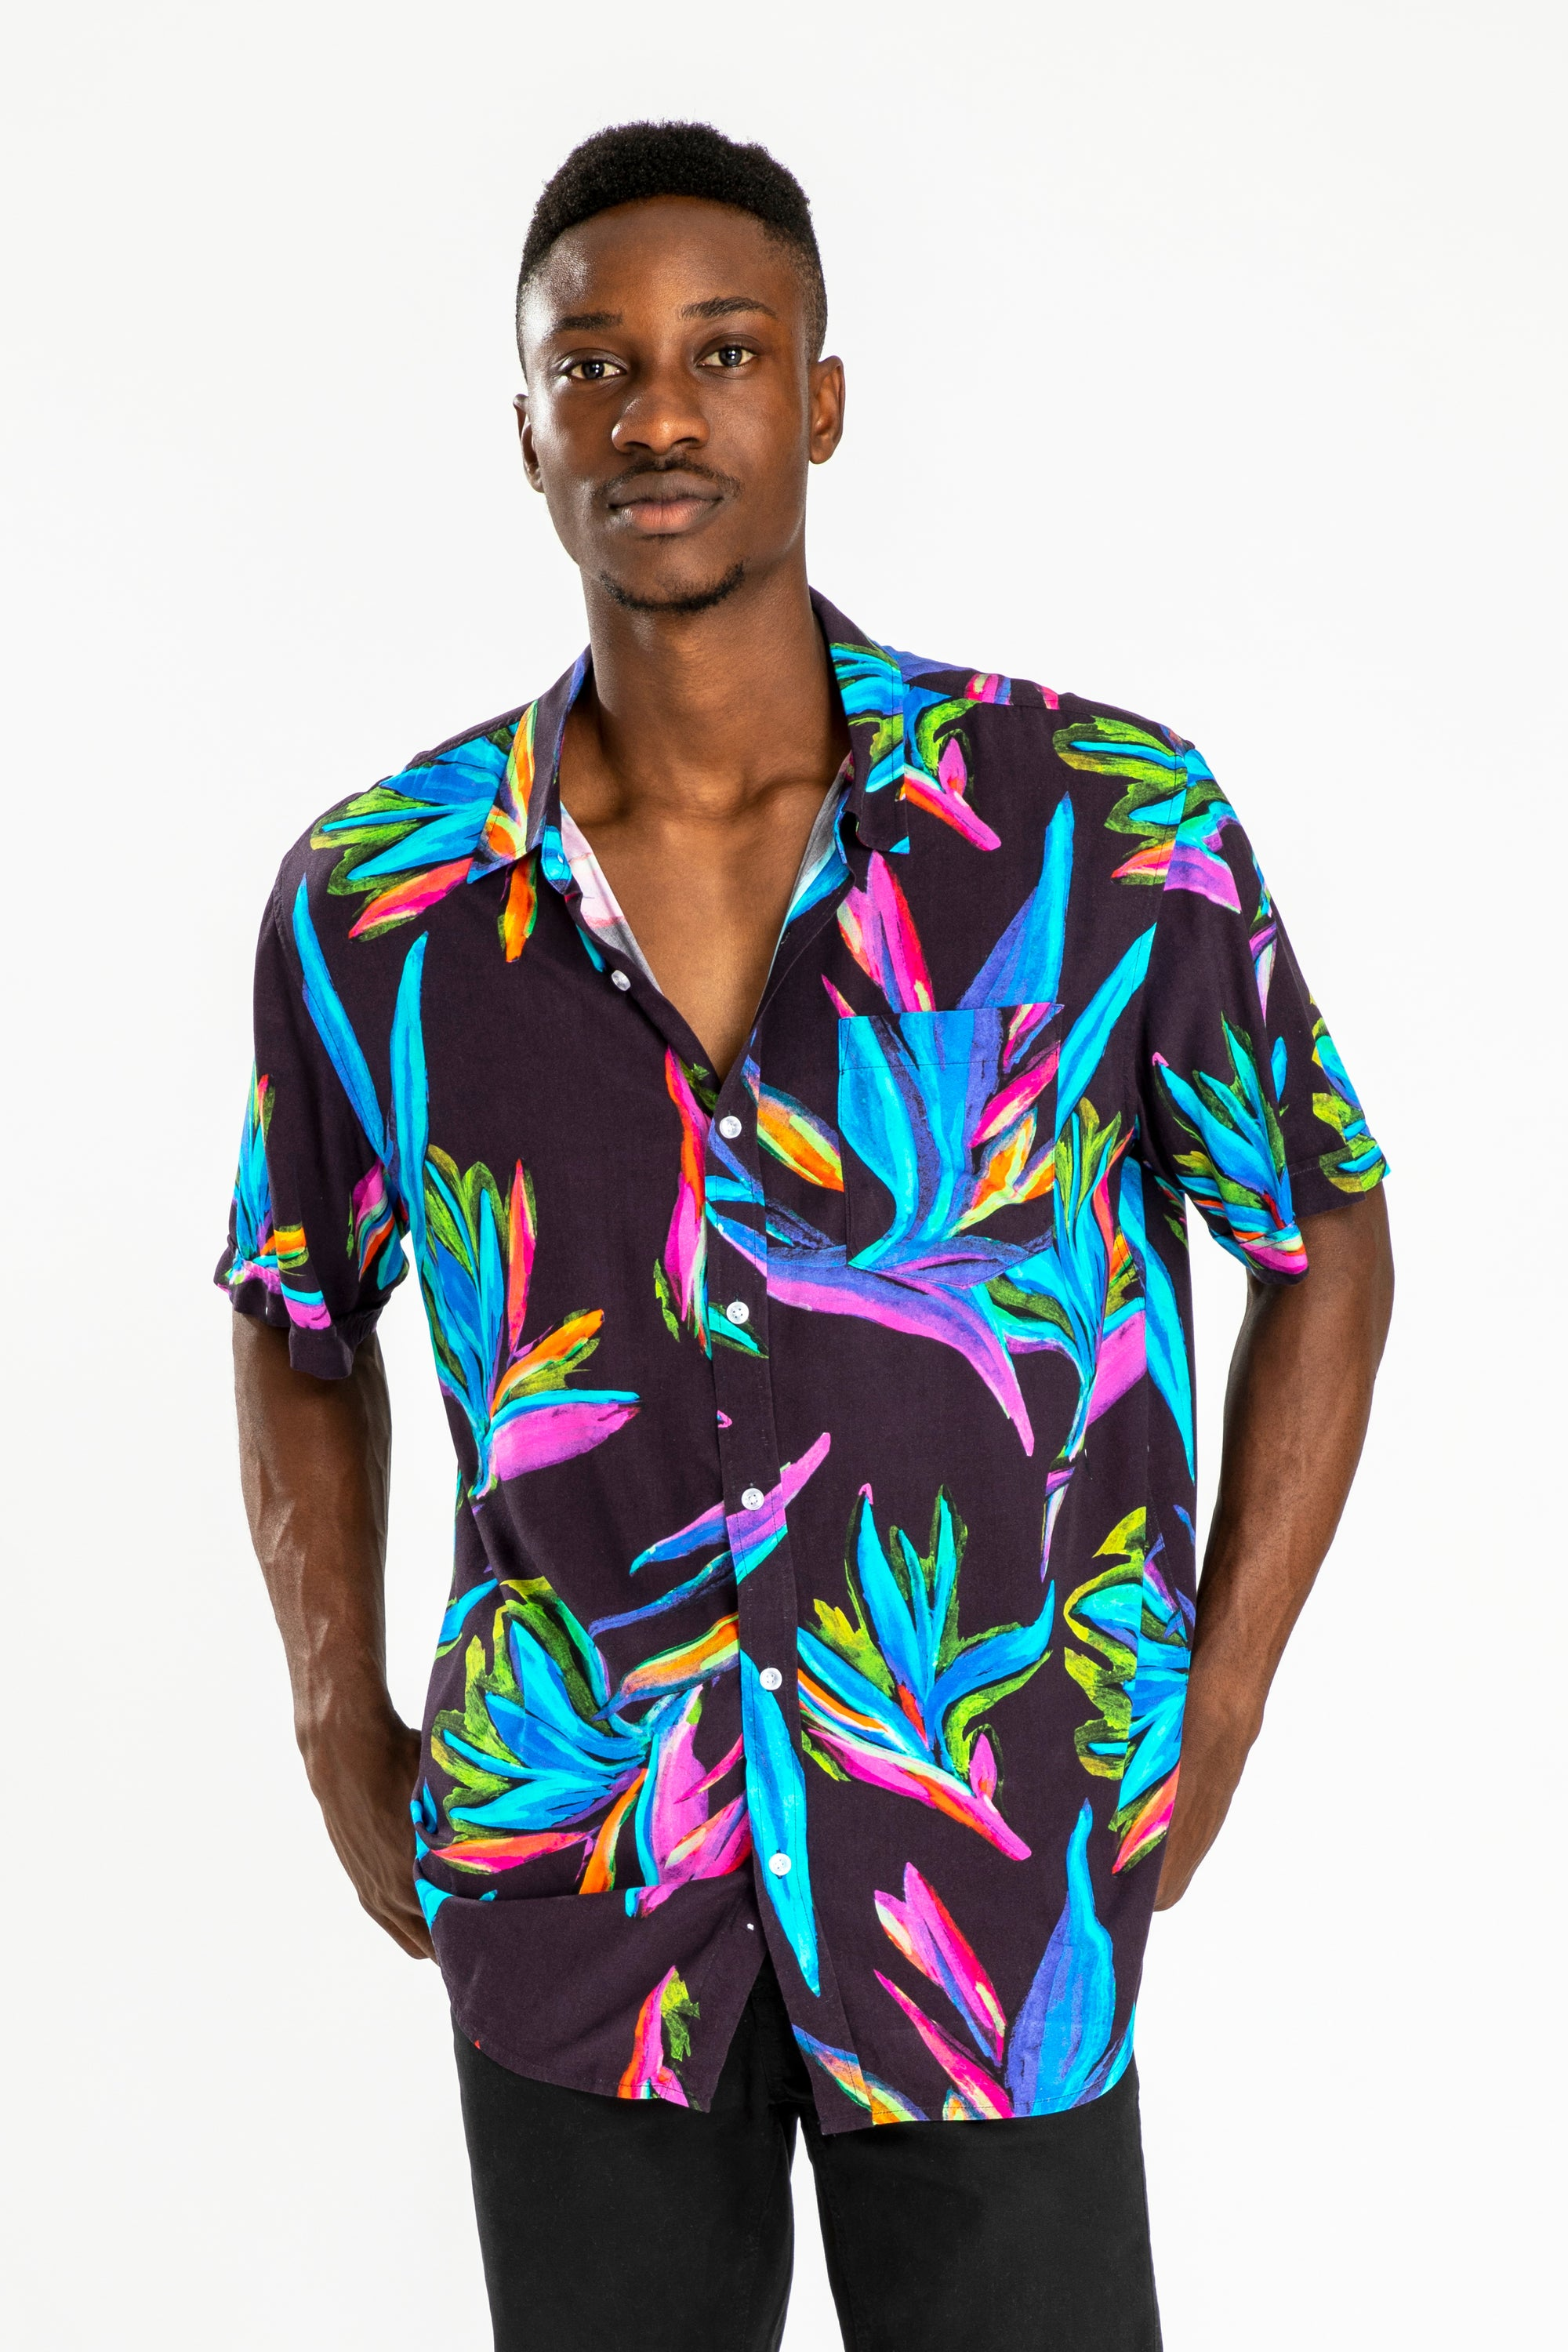 men's short sleeve party shirt by Poolside Party Shirts with multi colour bird of paradise print on black background front view